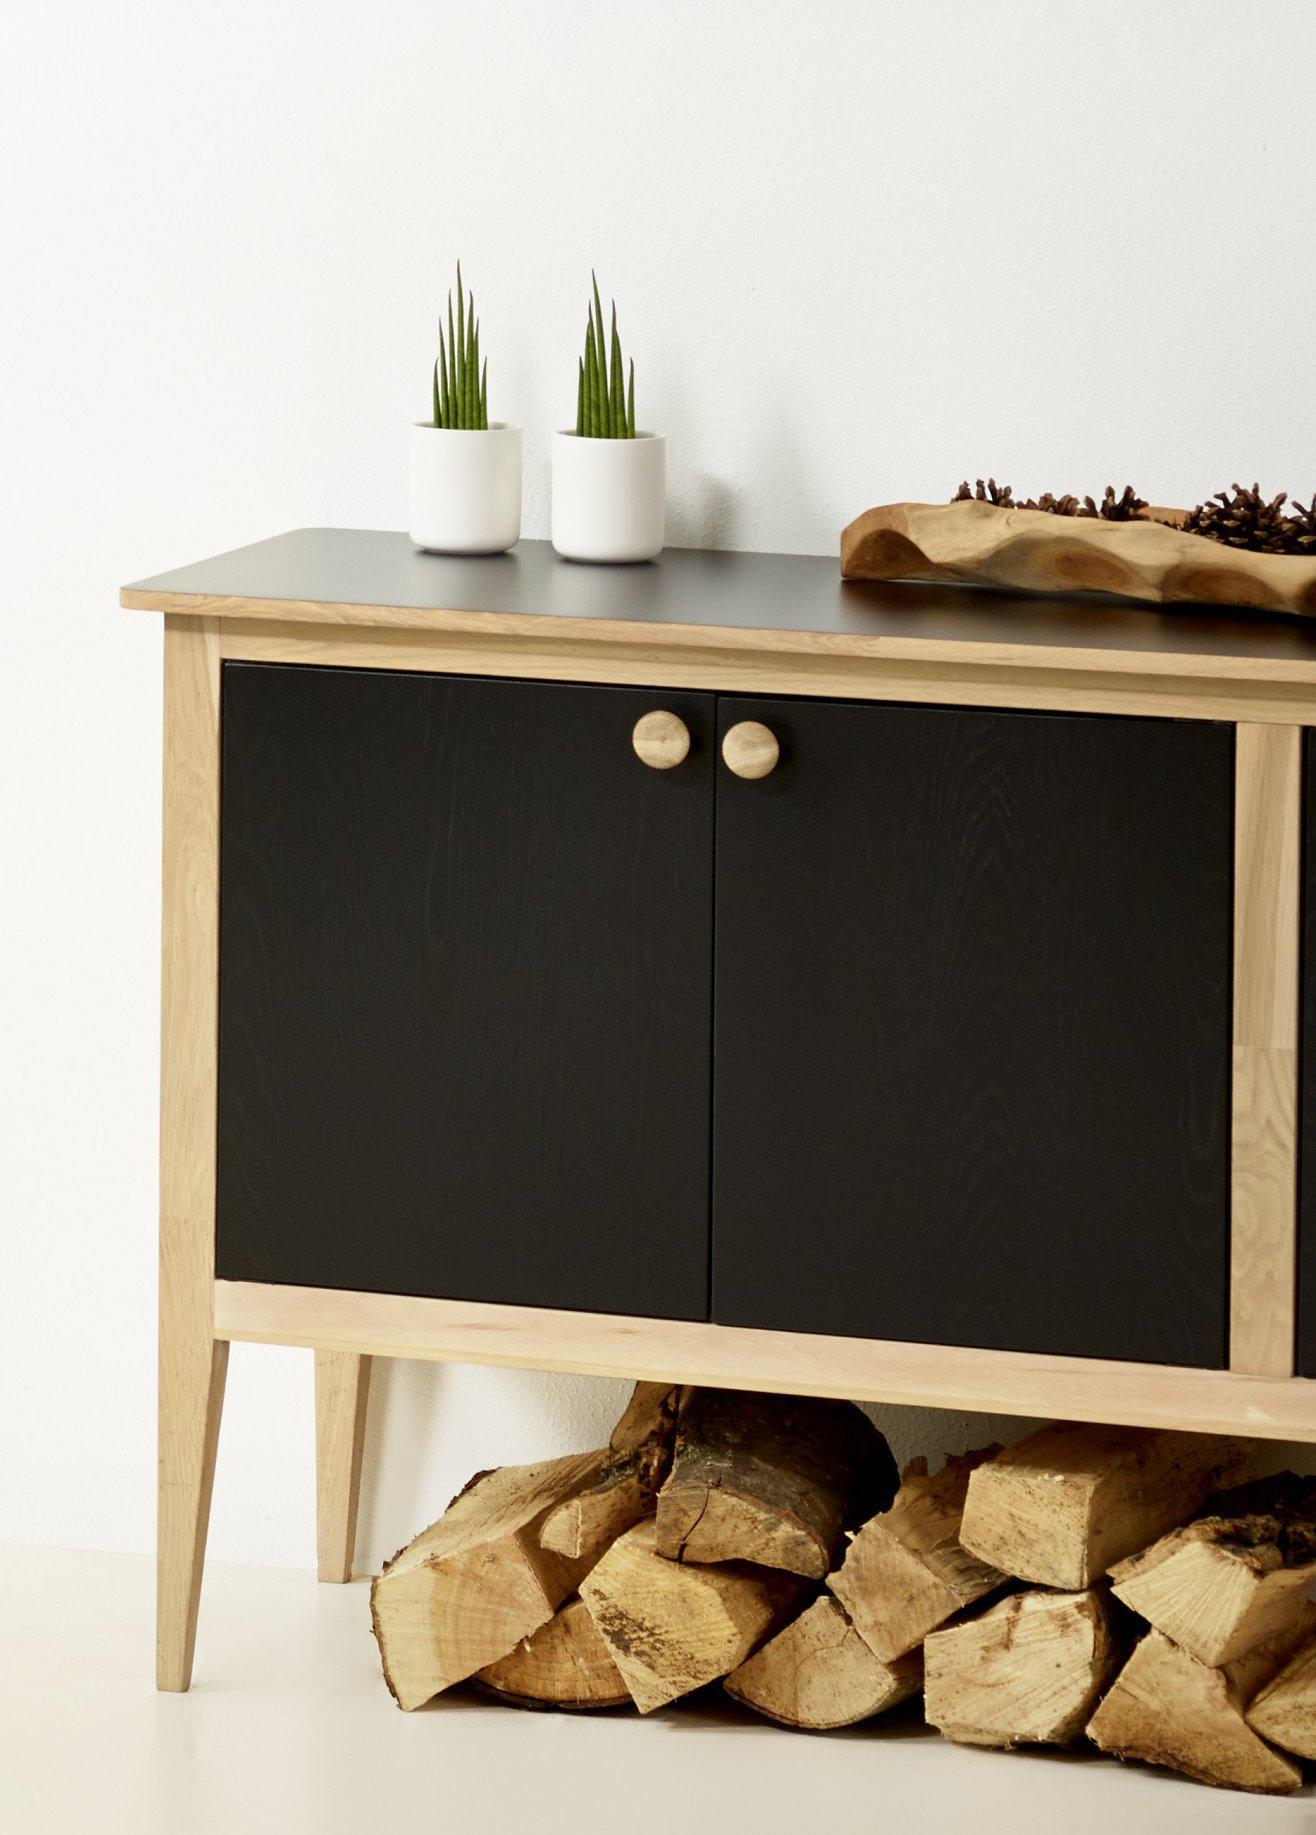 massiv holz sideboard mayflower kommode schrank eiche highboard schwarz kaufen bei dtg dynamic. Black Bedroom Furniture Sets. Home Design Ideas